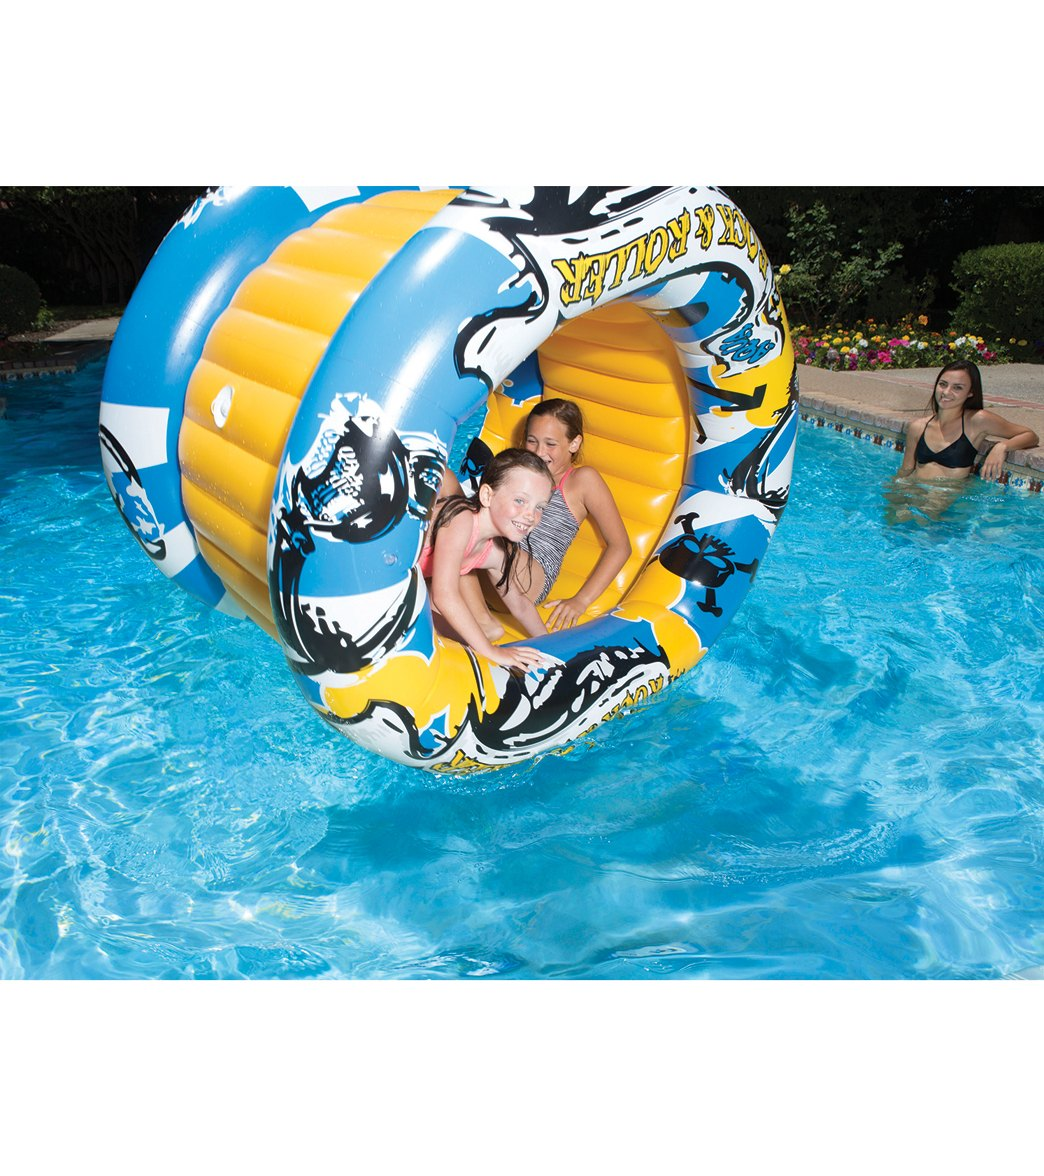 lovely fresh of and rider sand poolmaster toys octopus water other hammock lounger child kid view